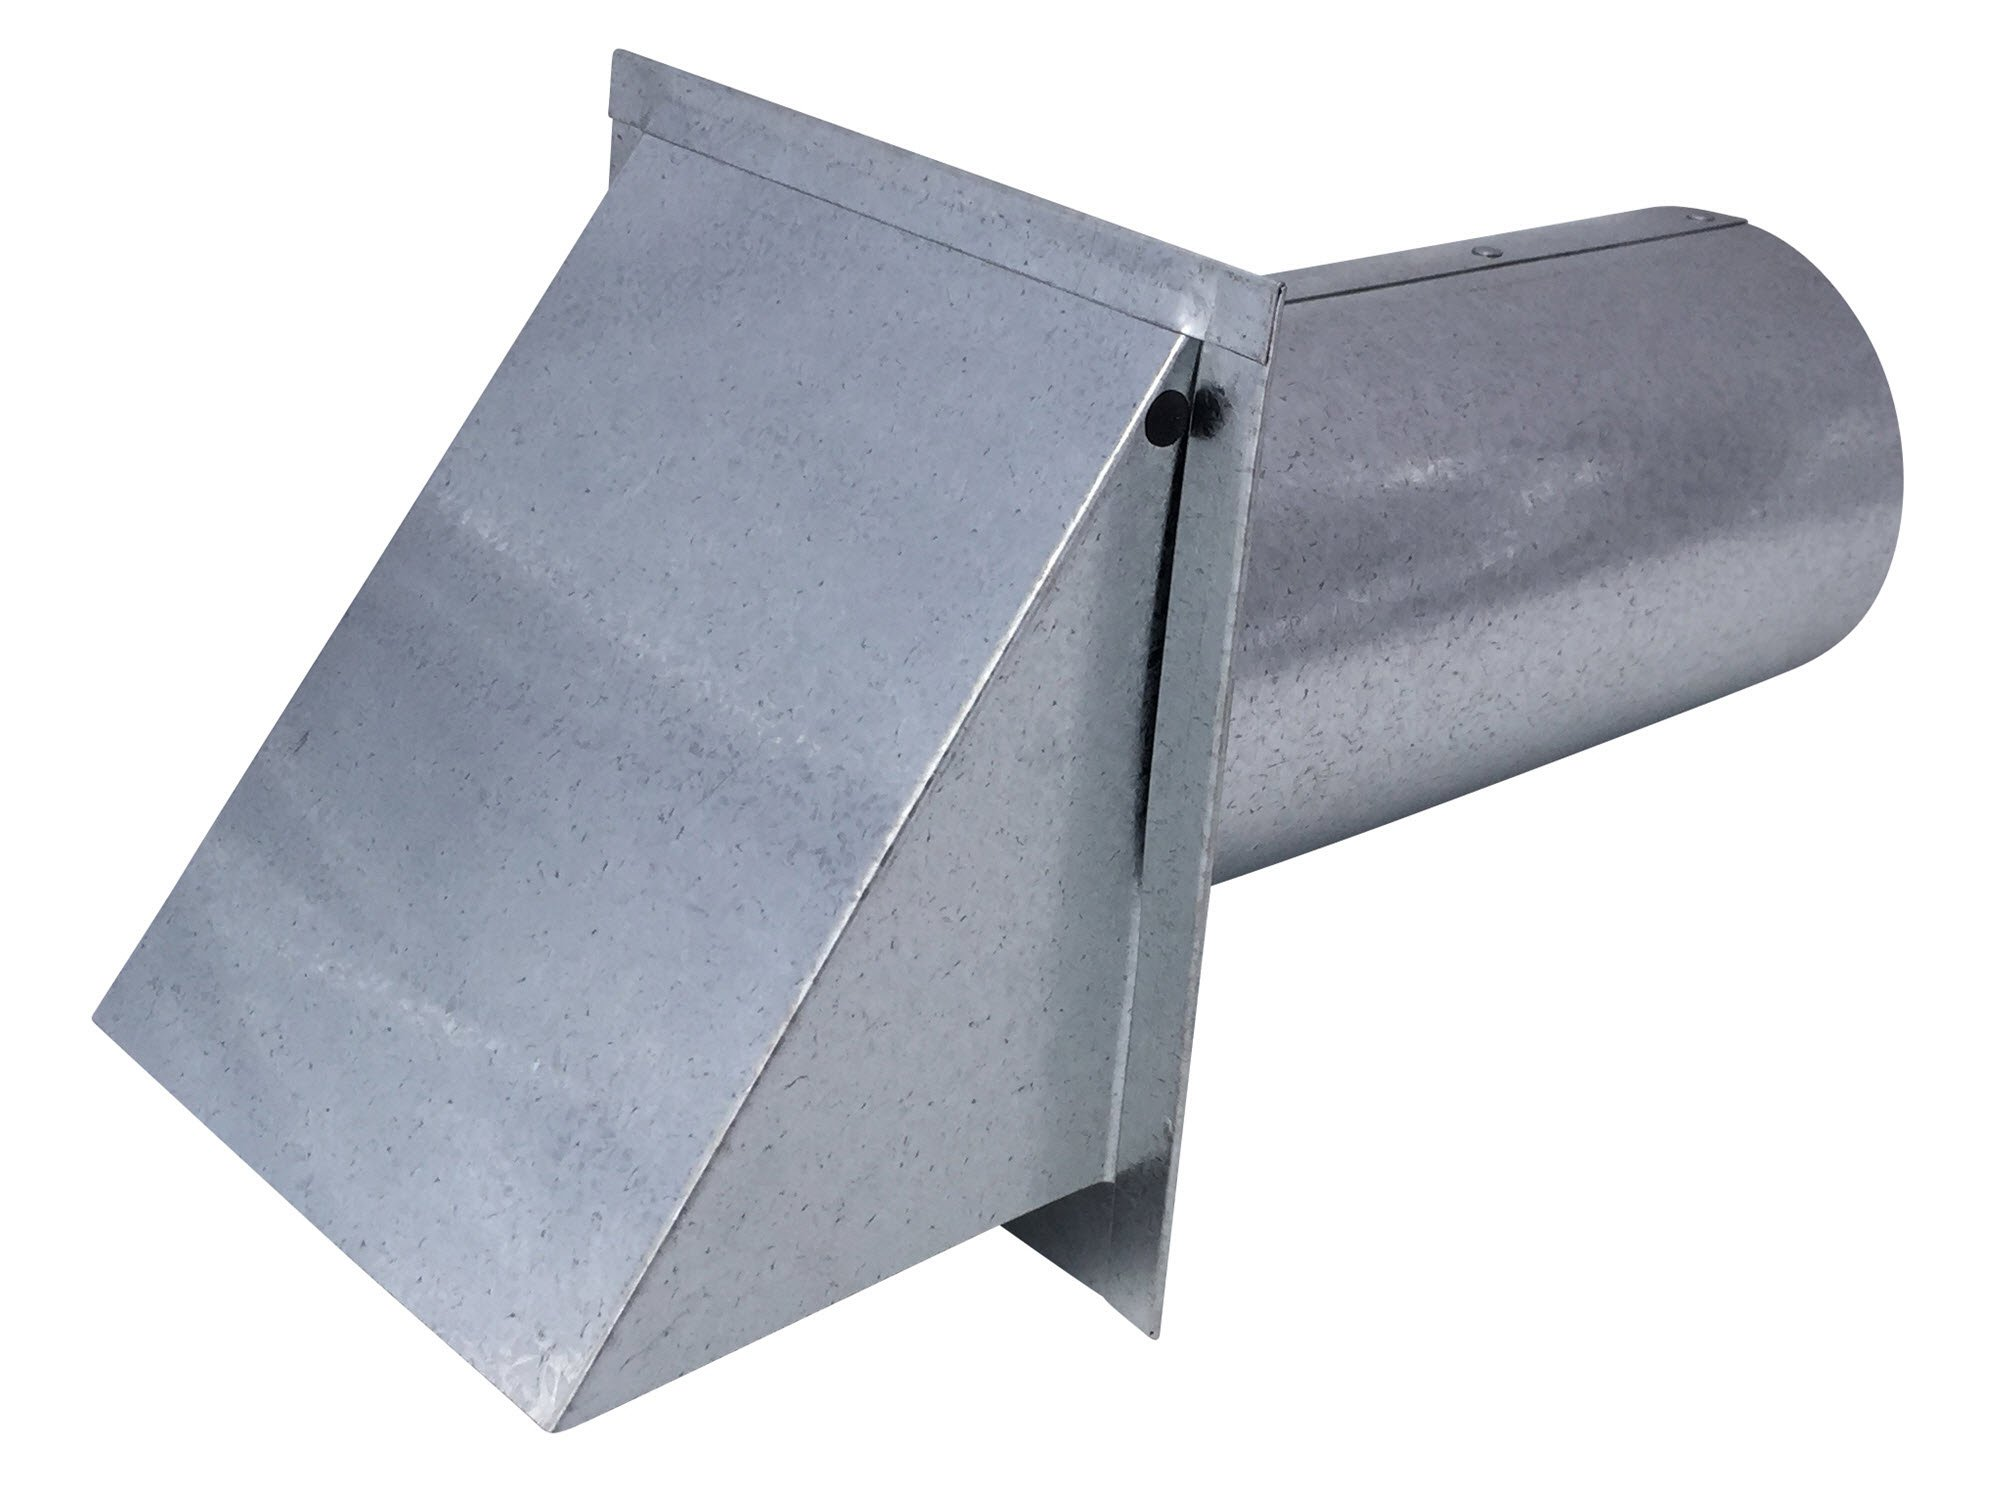 5 Inch Wall Vent Galvanized Damper & Screen (5 Inch Diameter) - Vent Works